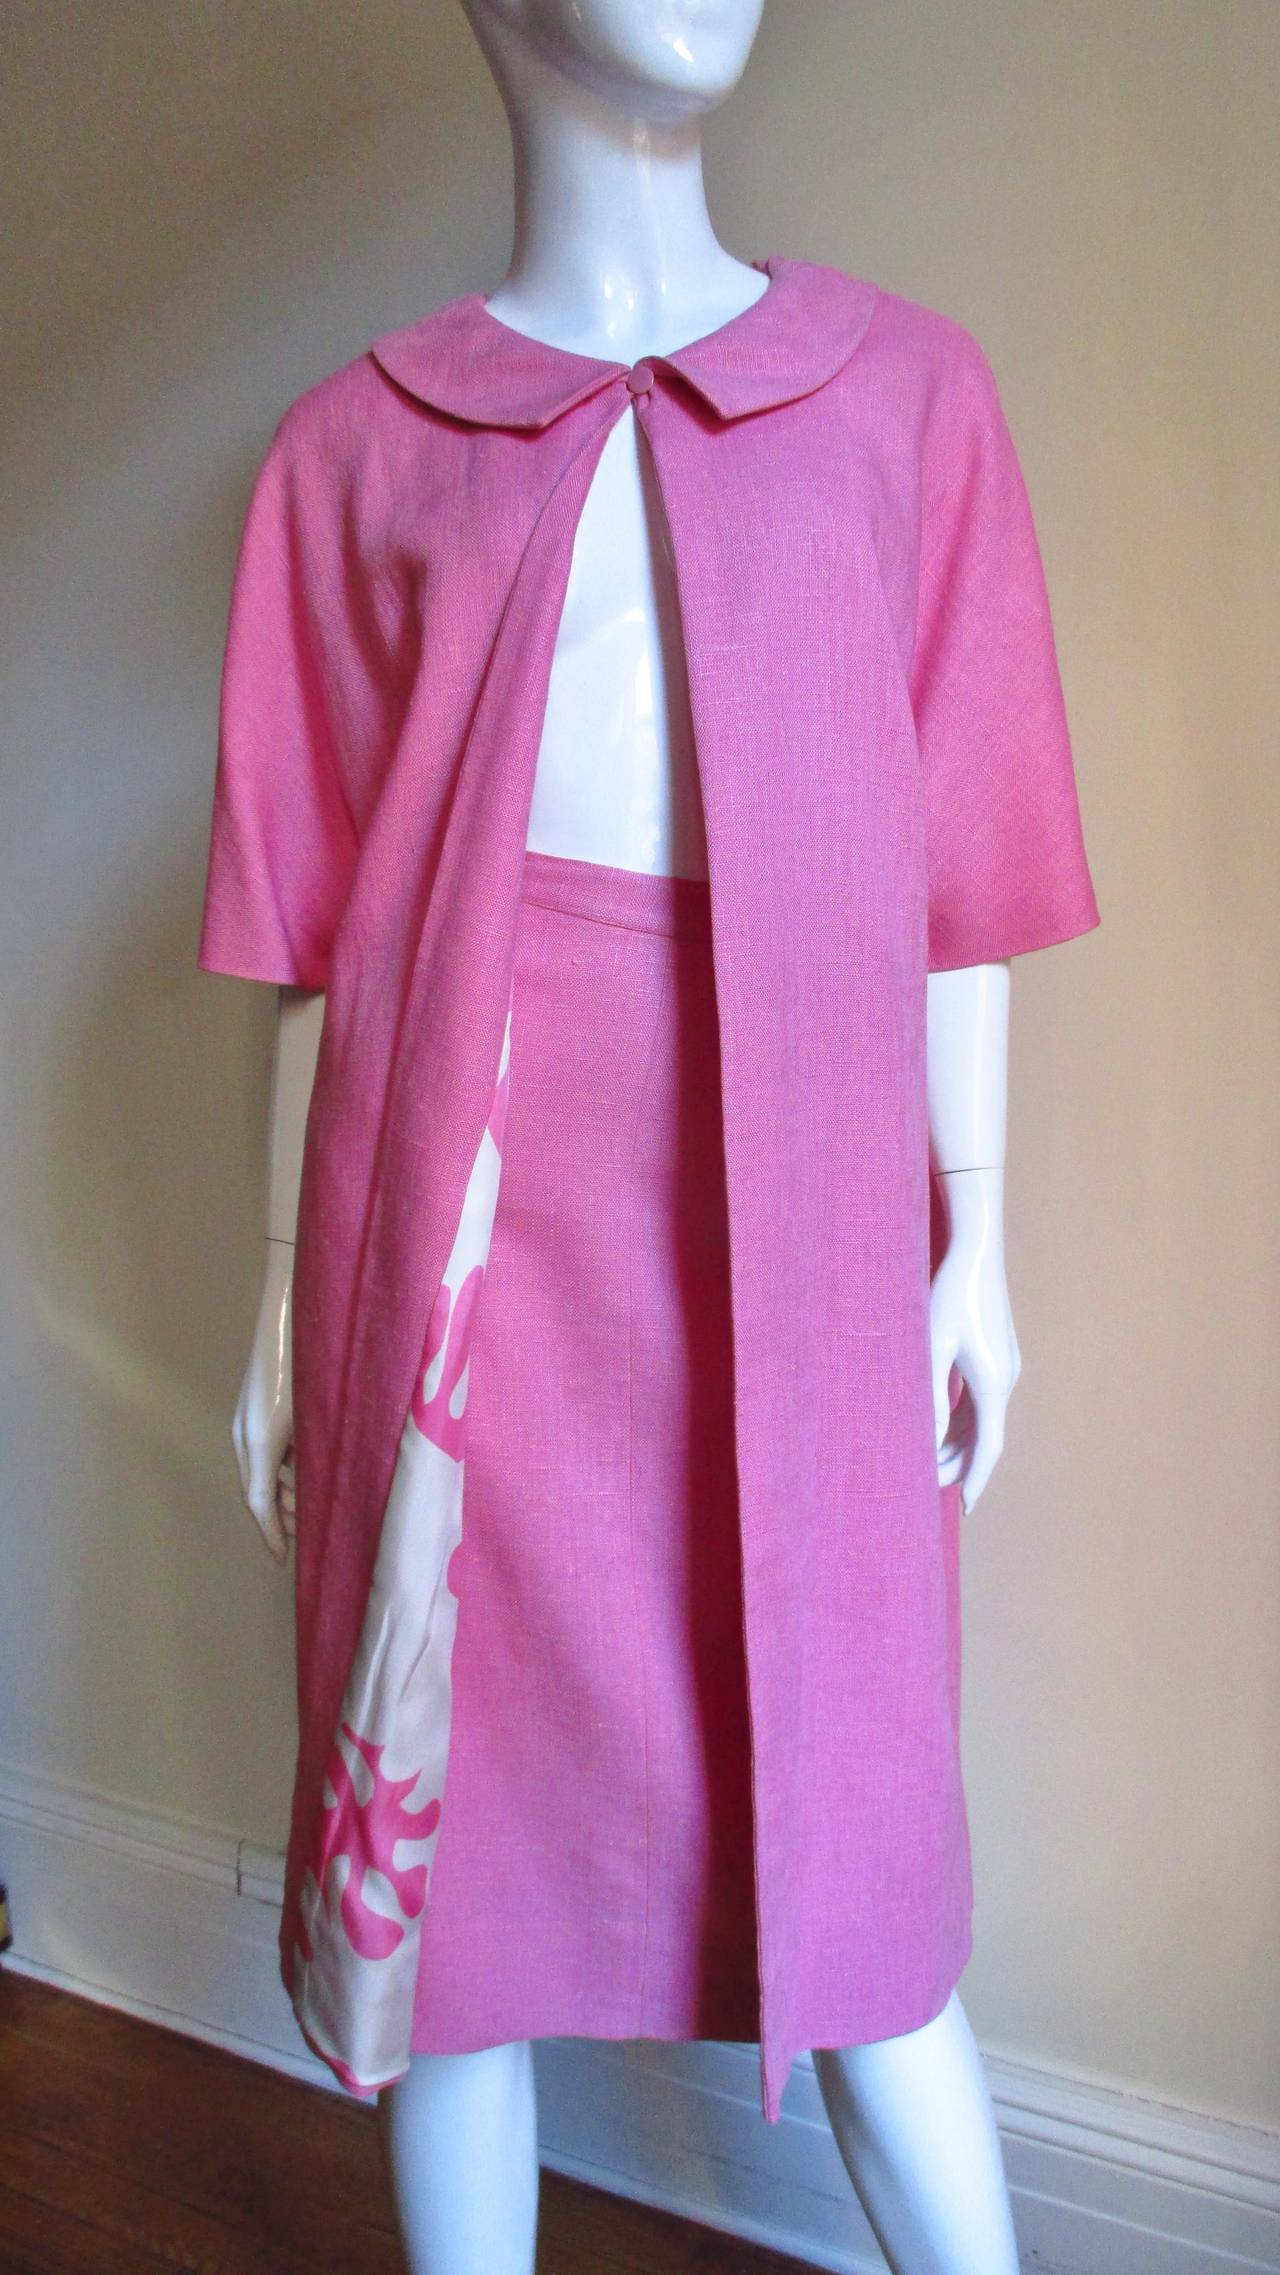 B H Wragge 1960s Linen Coat and Skirt For Sale 2